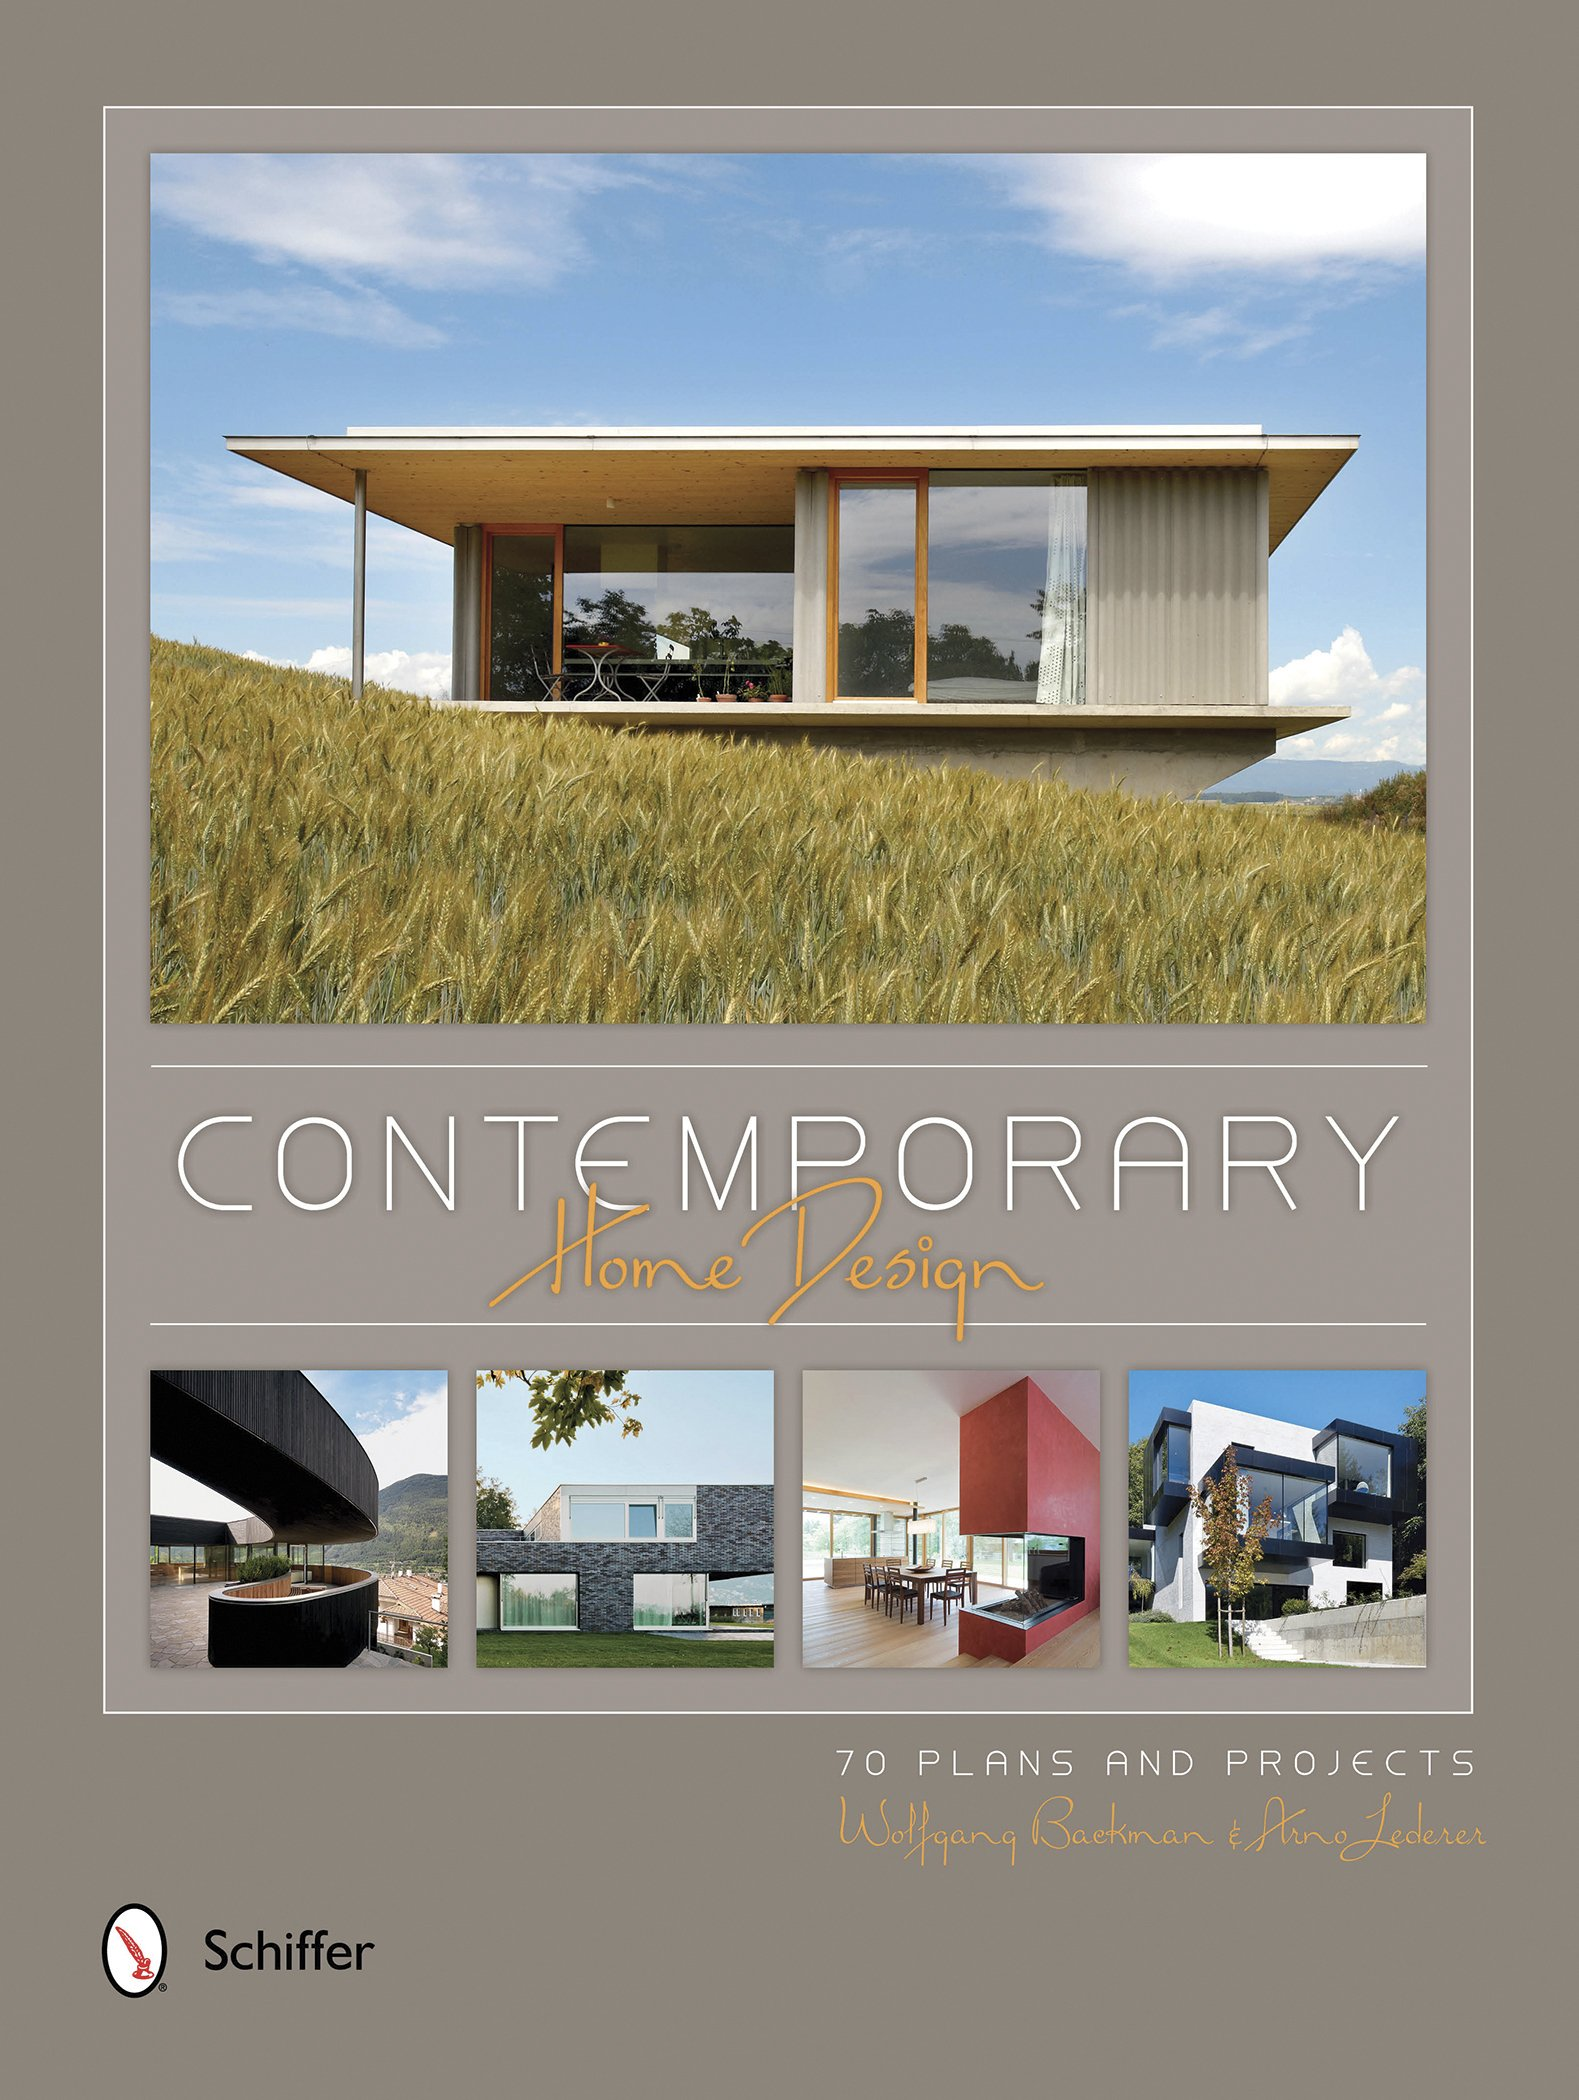 Contemporary Home Design 70 Plans And Projects Bachmann Wolfgang Lederer Arno 9780764348471 Amazon Com Books